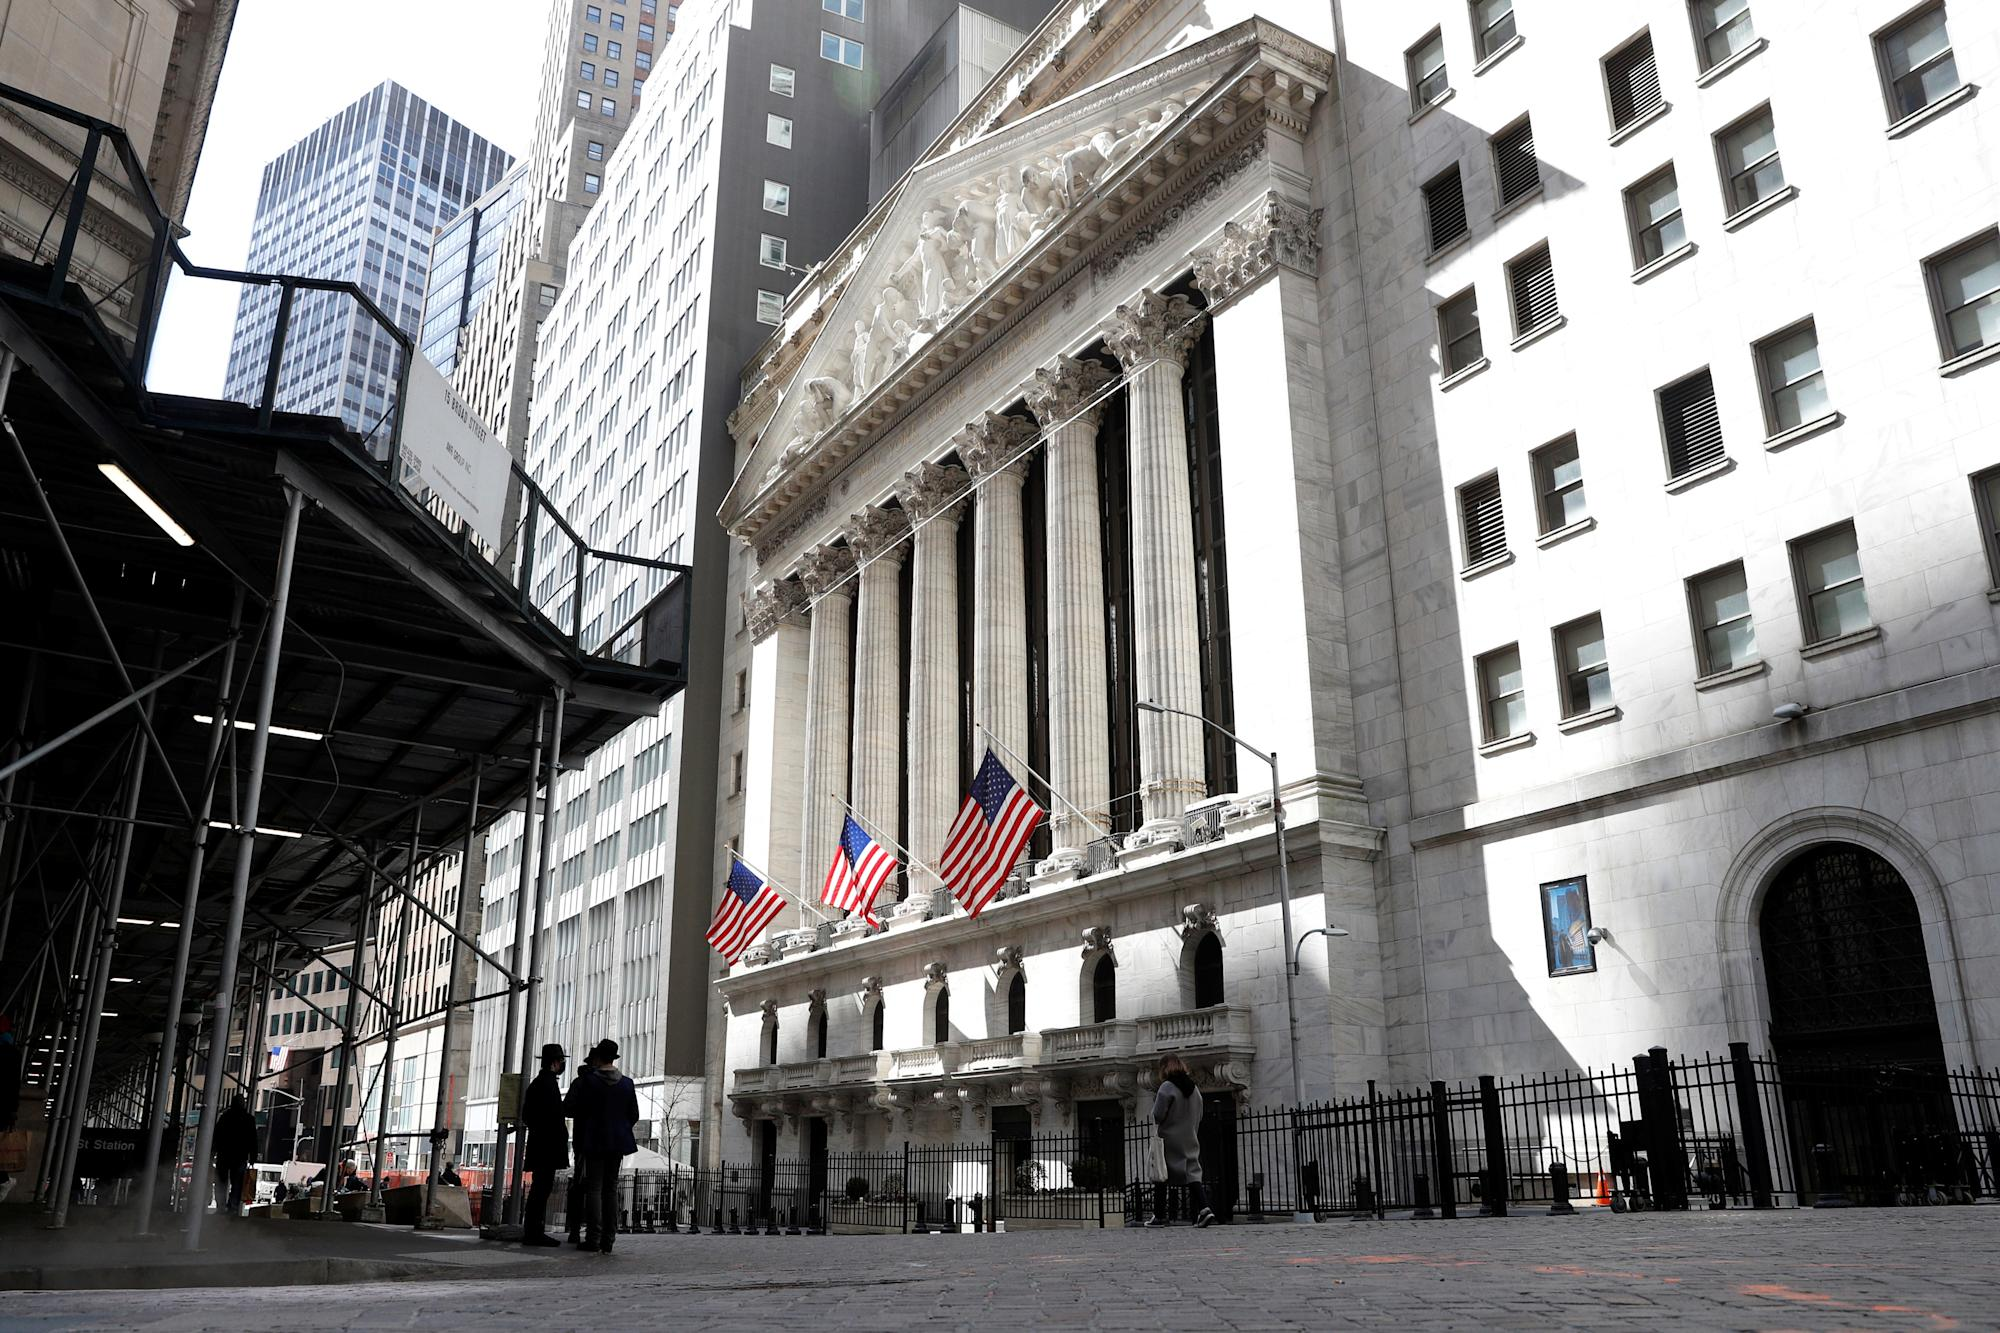 Stock market news live updates: Stock futures trade mixed after S&P 50... image